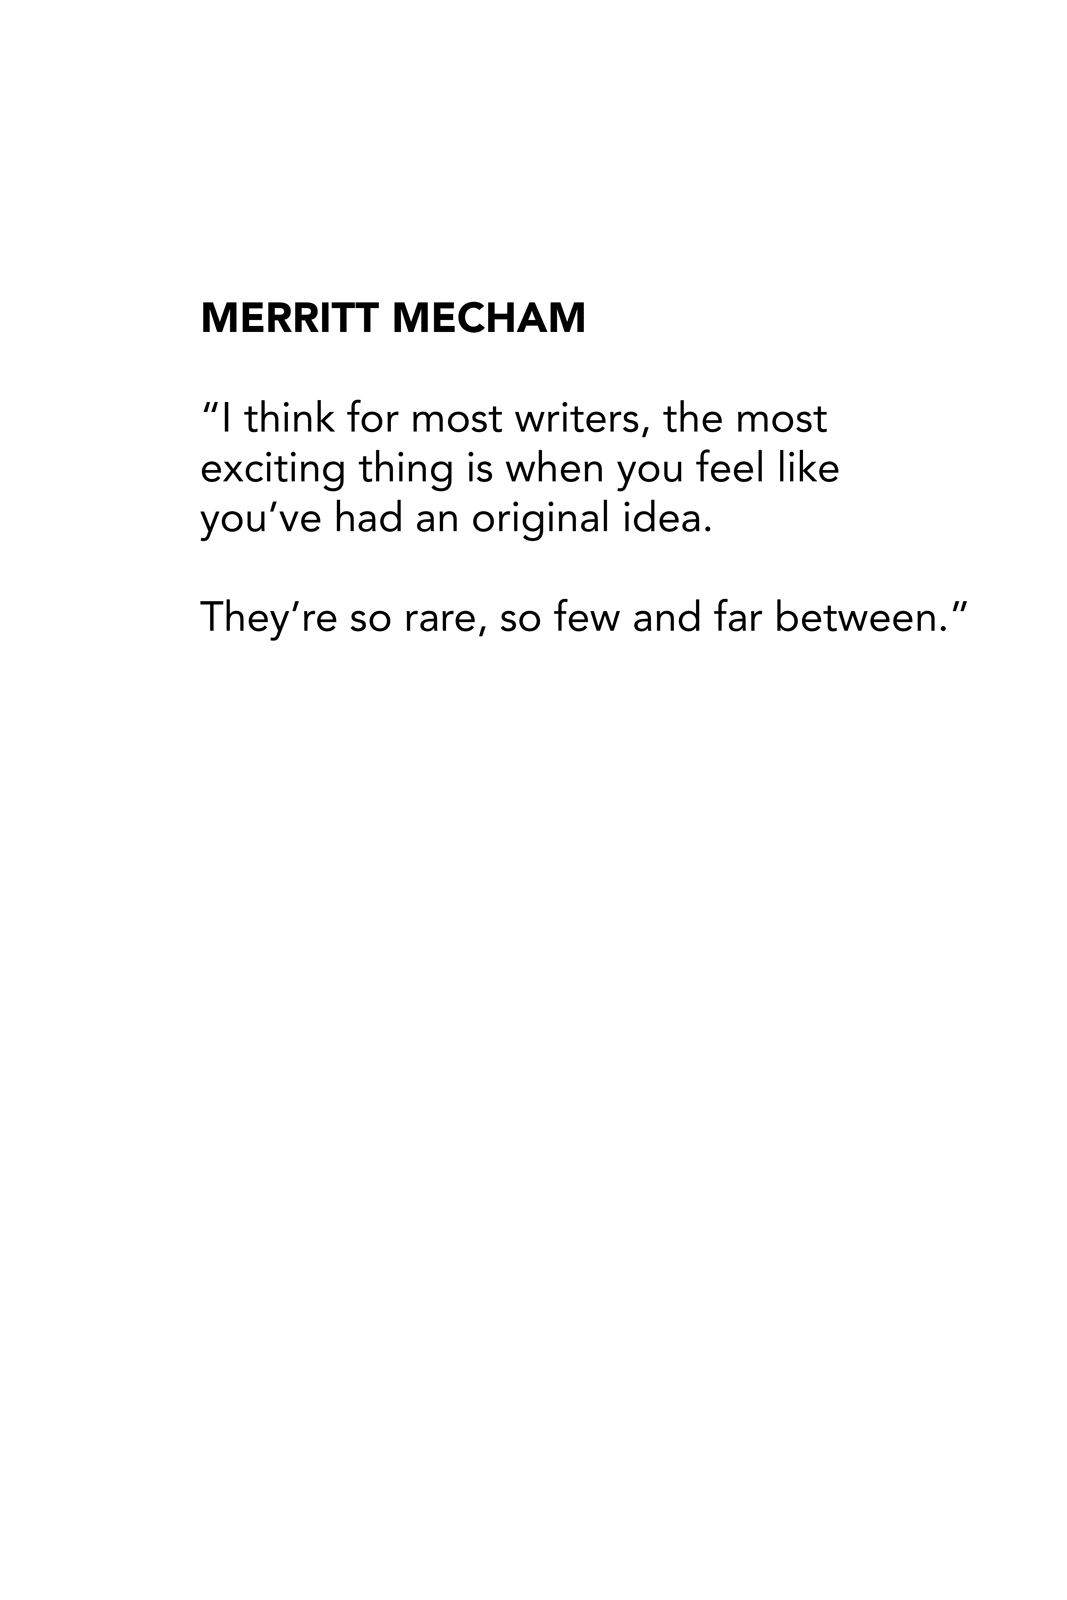 Merritt Mecham Quote.jpg